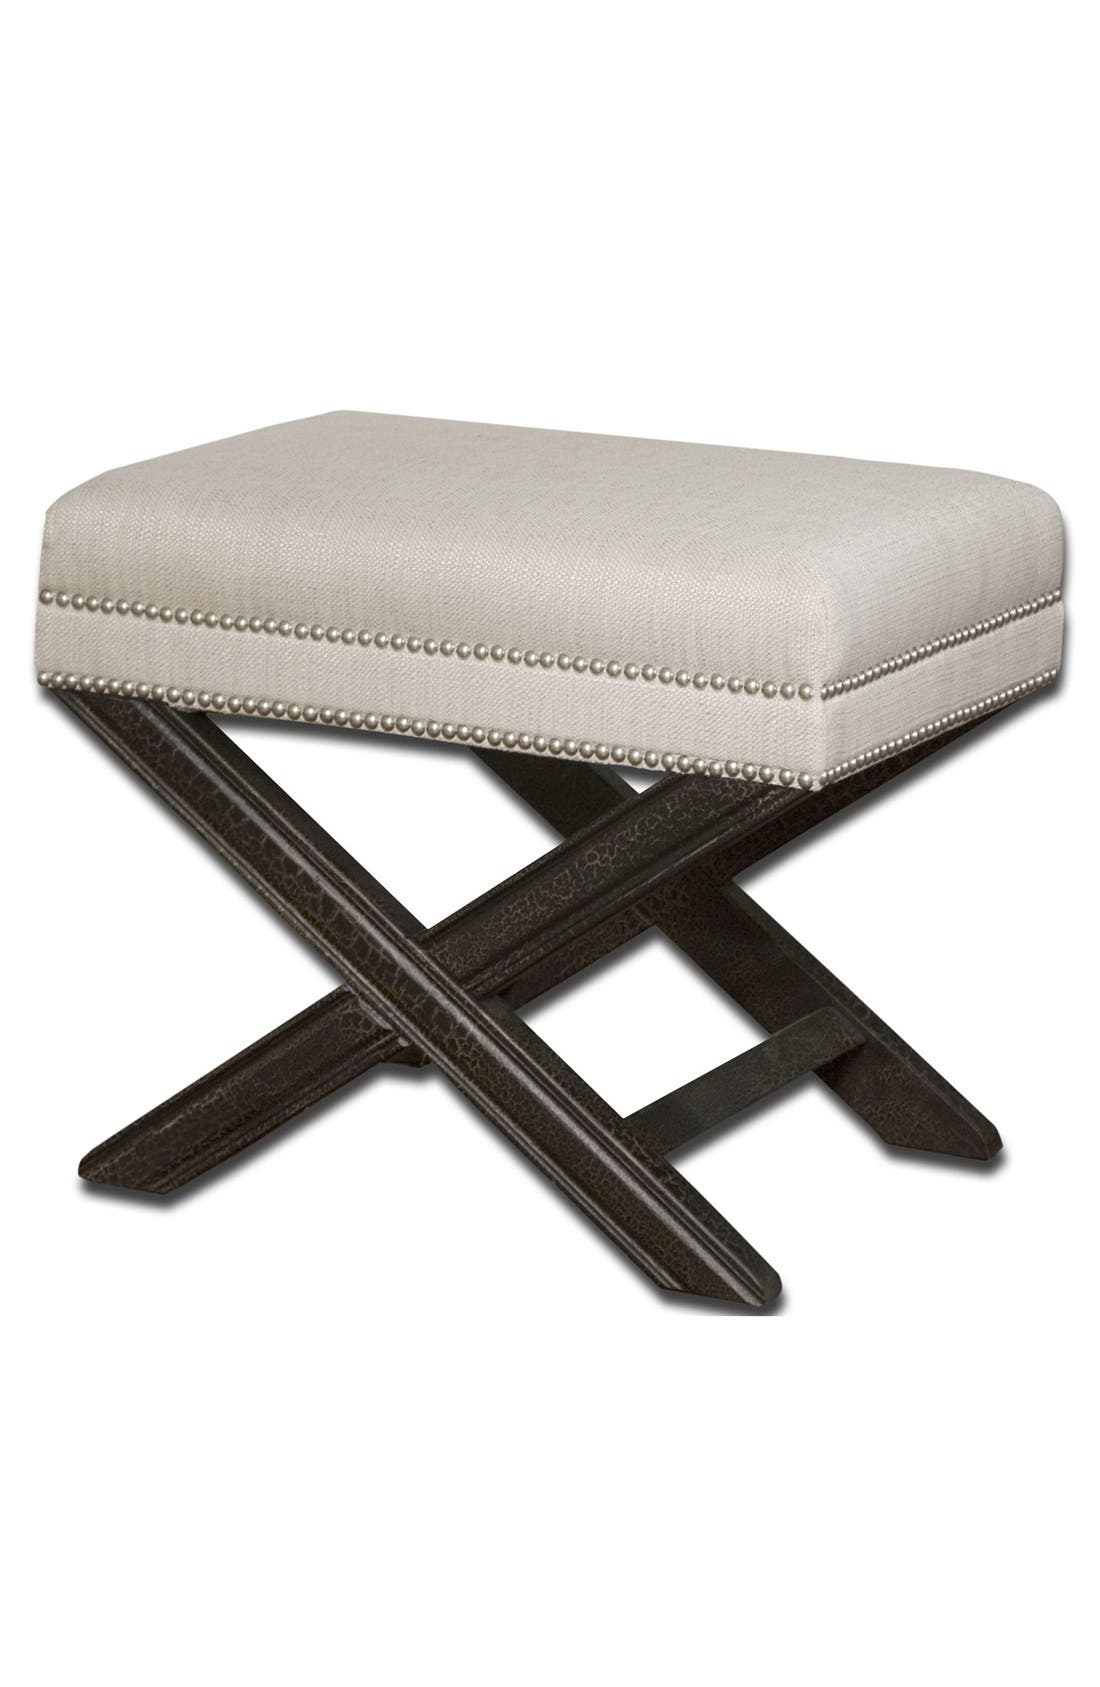 Alternate Image 1 Selected - Uttermost 'Viera' Sandy White Small Bench